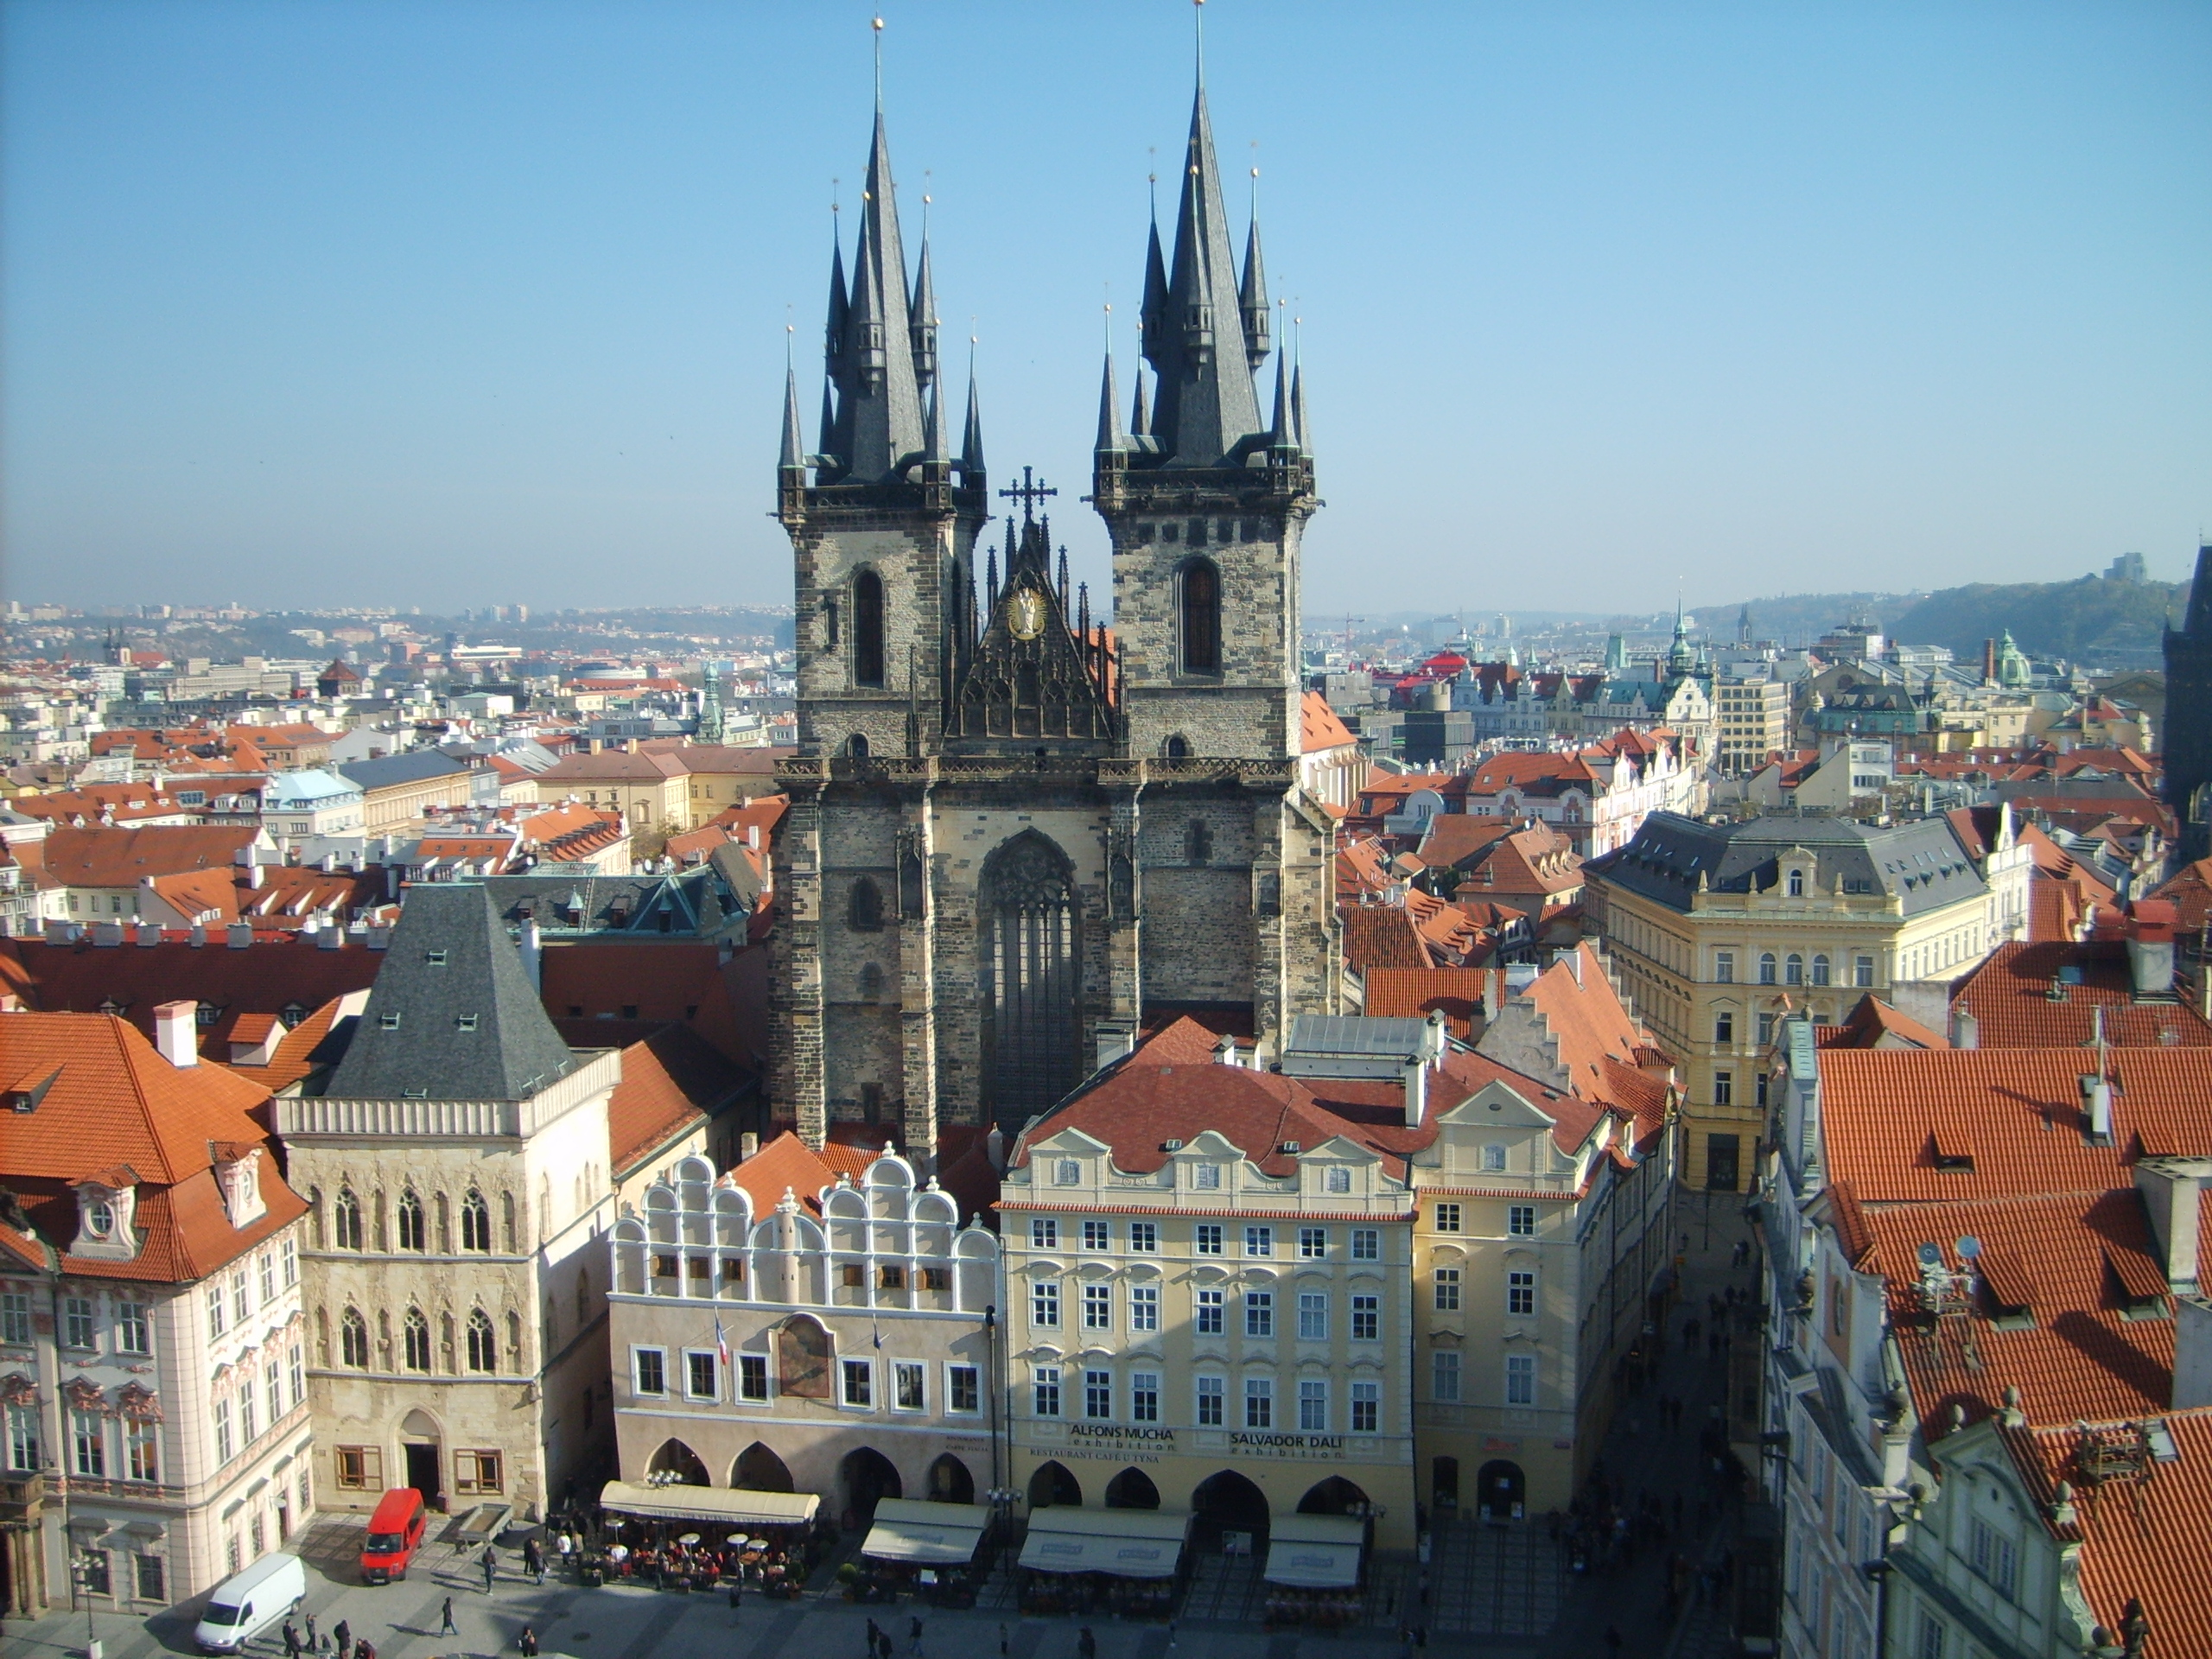 Next stop on my little whirlwind tour of Europe is Prague in the Czech Republic, where I've had two fantastic days exploring this wonderful city.